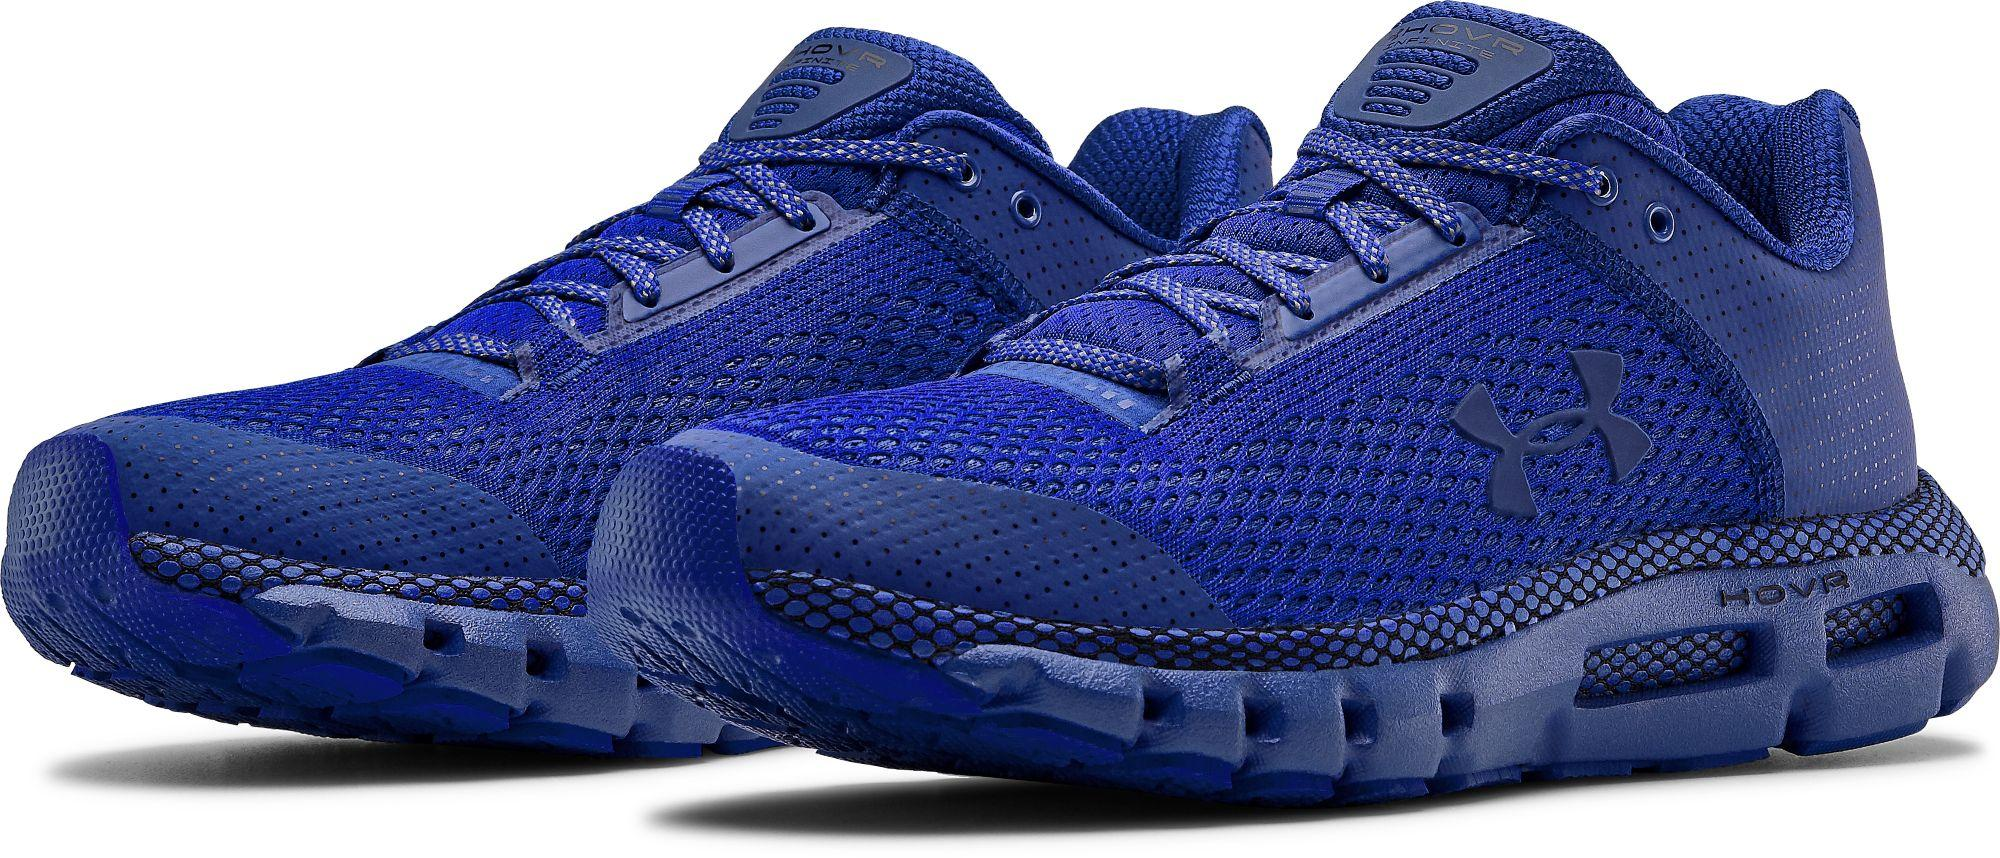 Under Armour Hovr Infinite Reflect